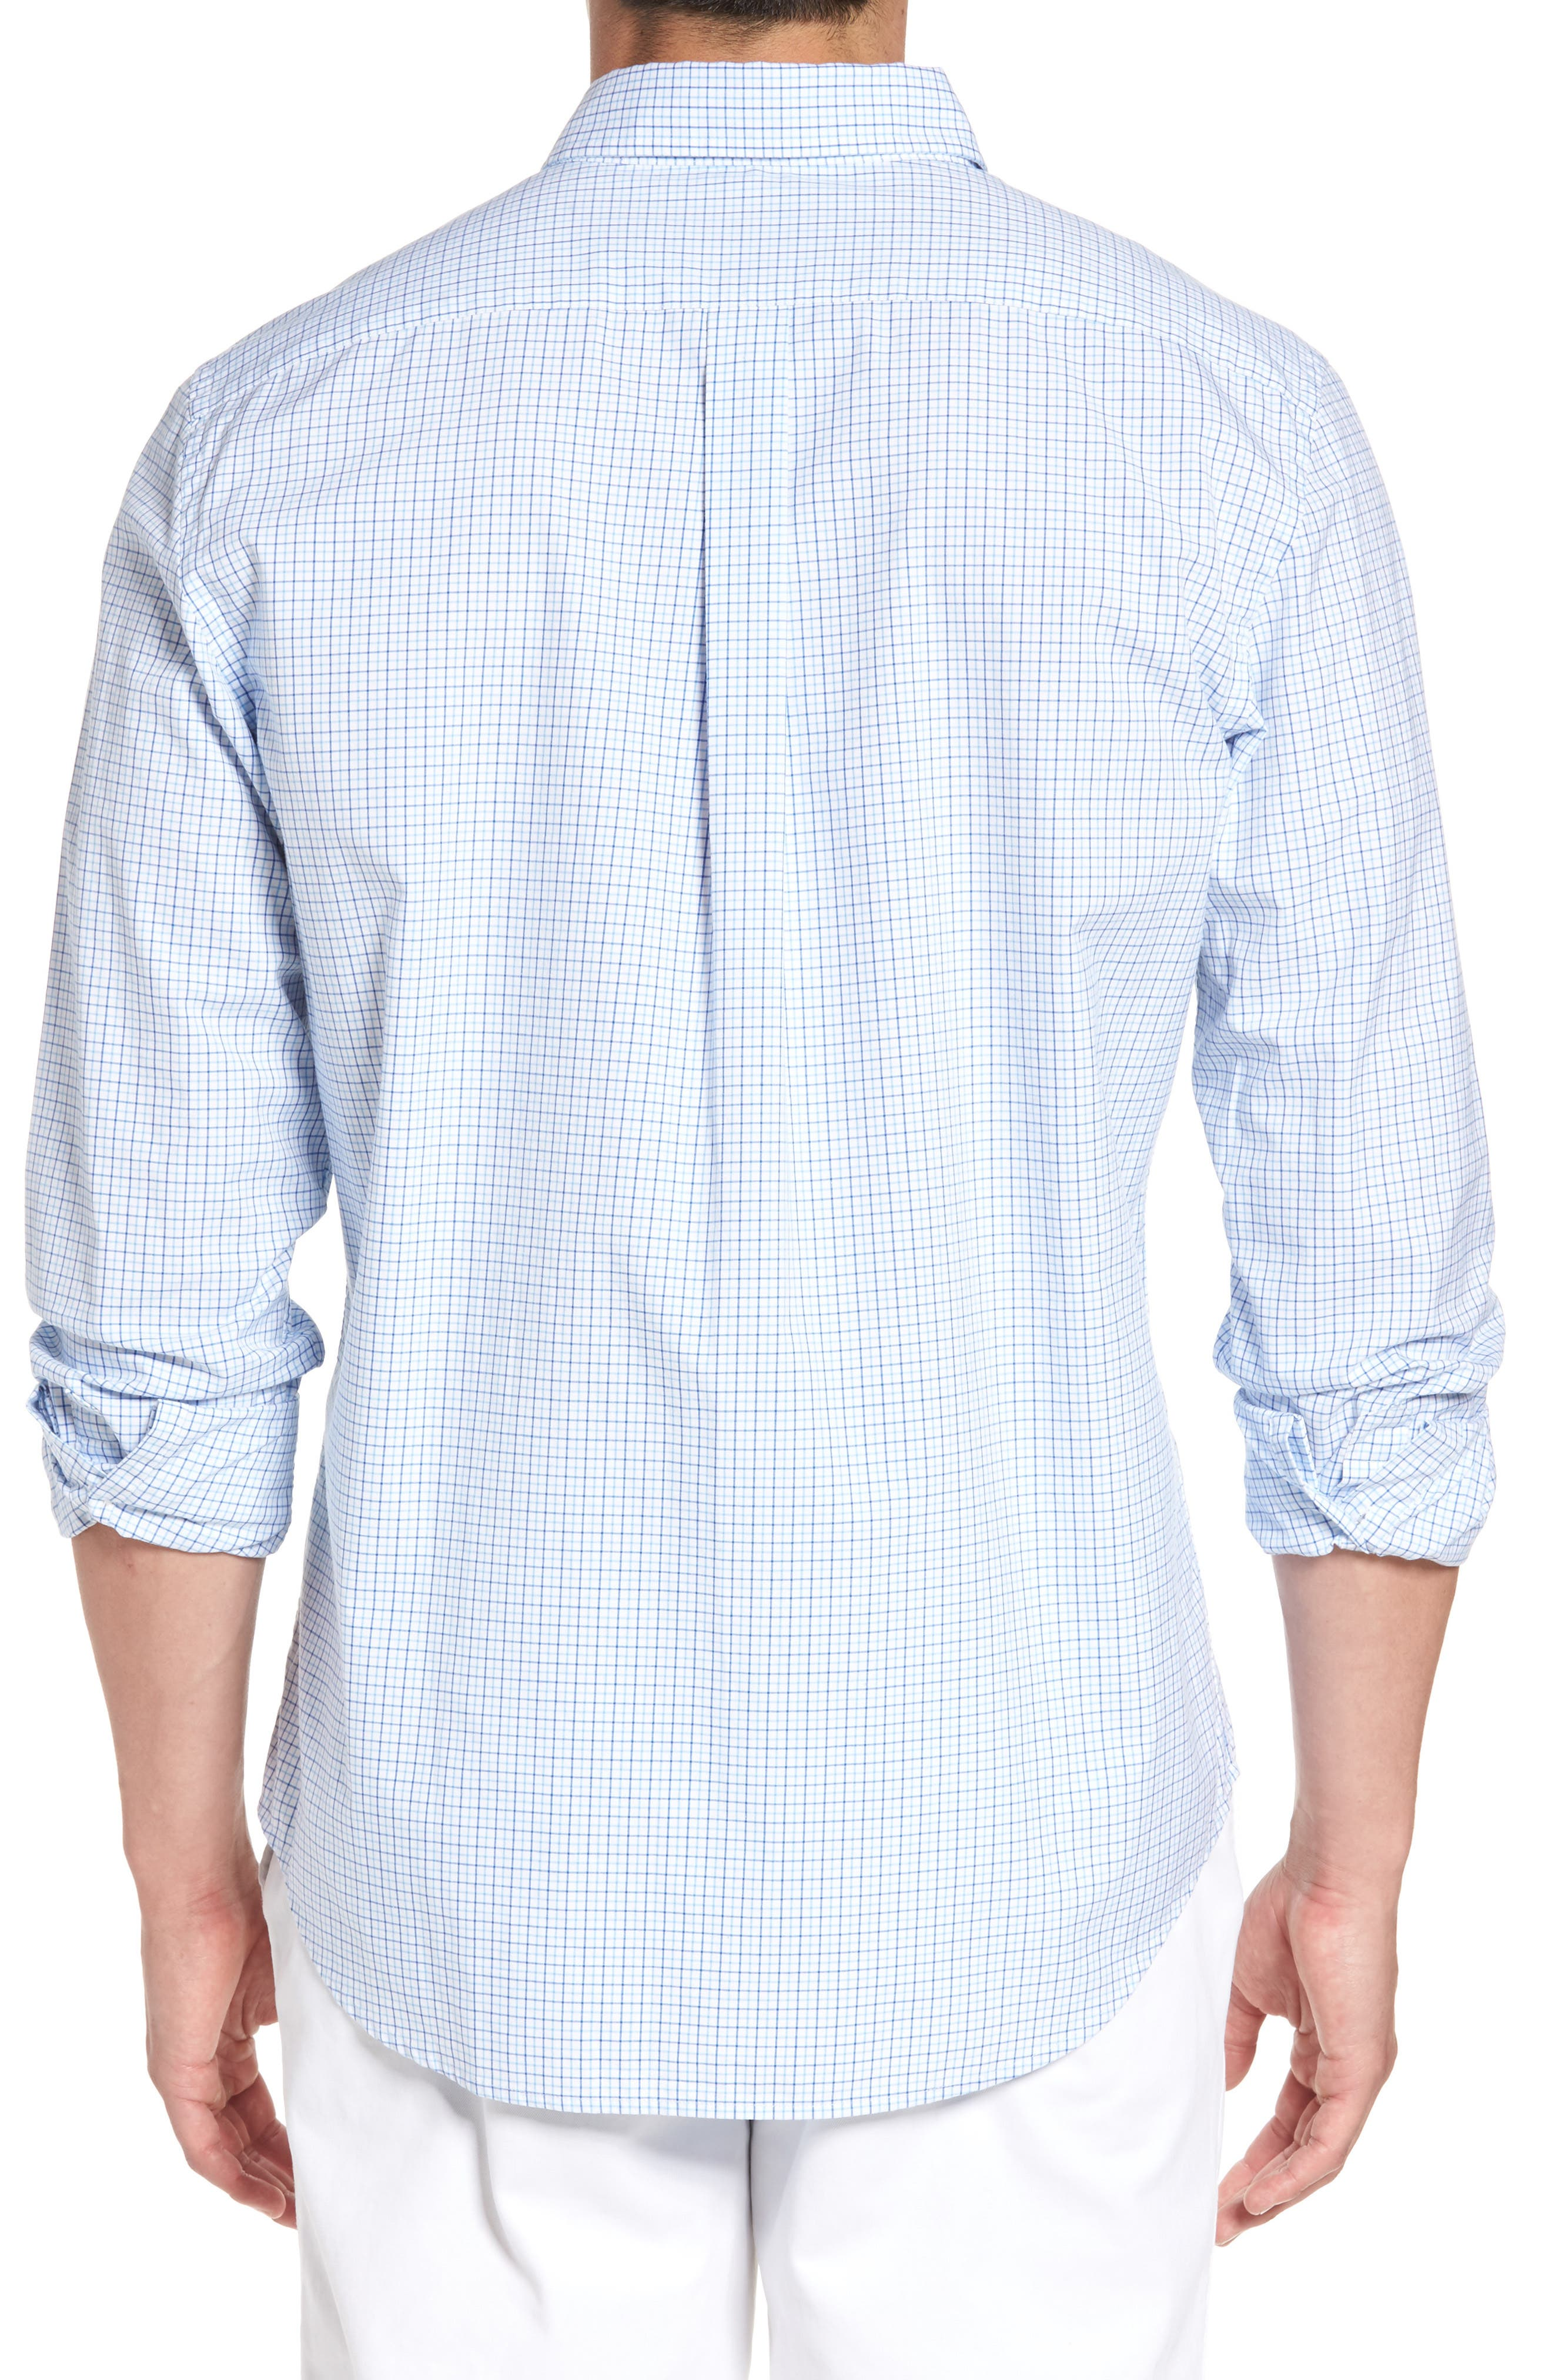 Twin Pond Classic Fit Tattersall Check Sport Shirt,                             Alternate thumbnail 2, color,                             484